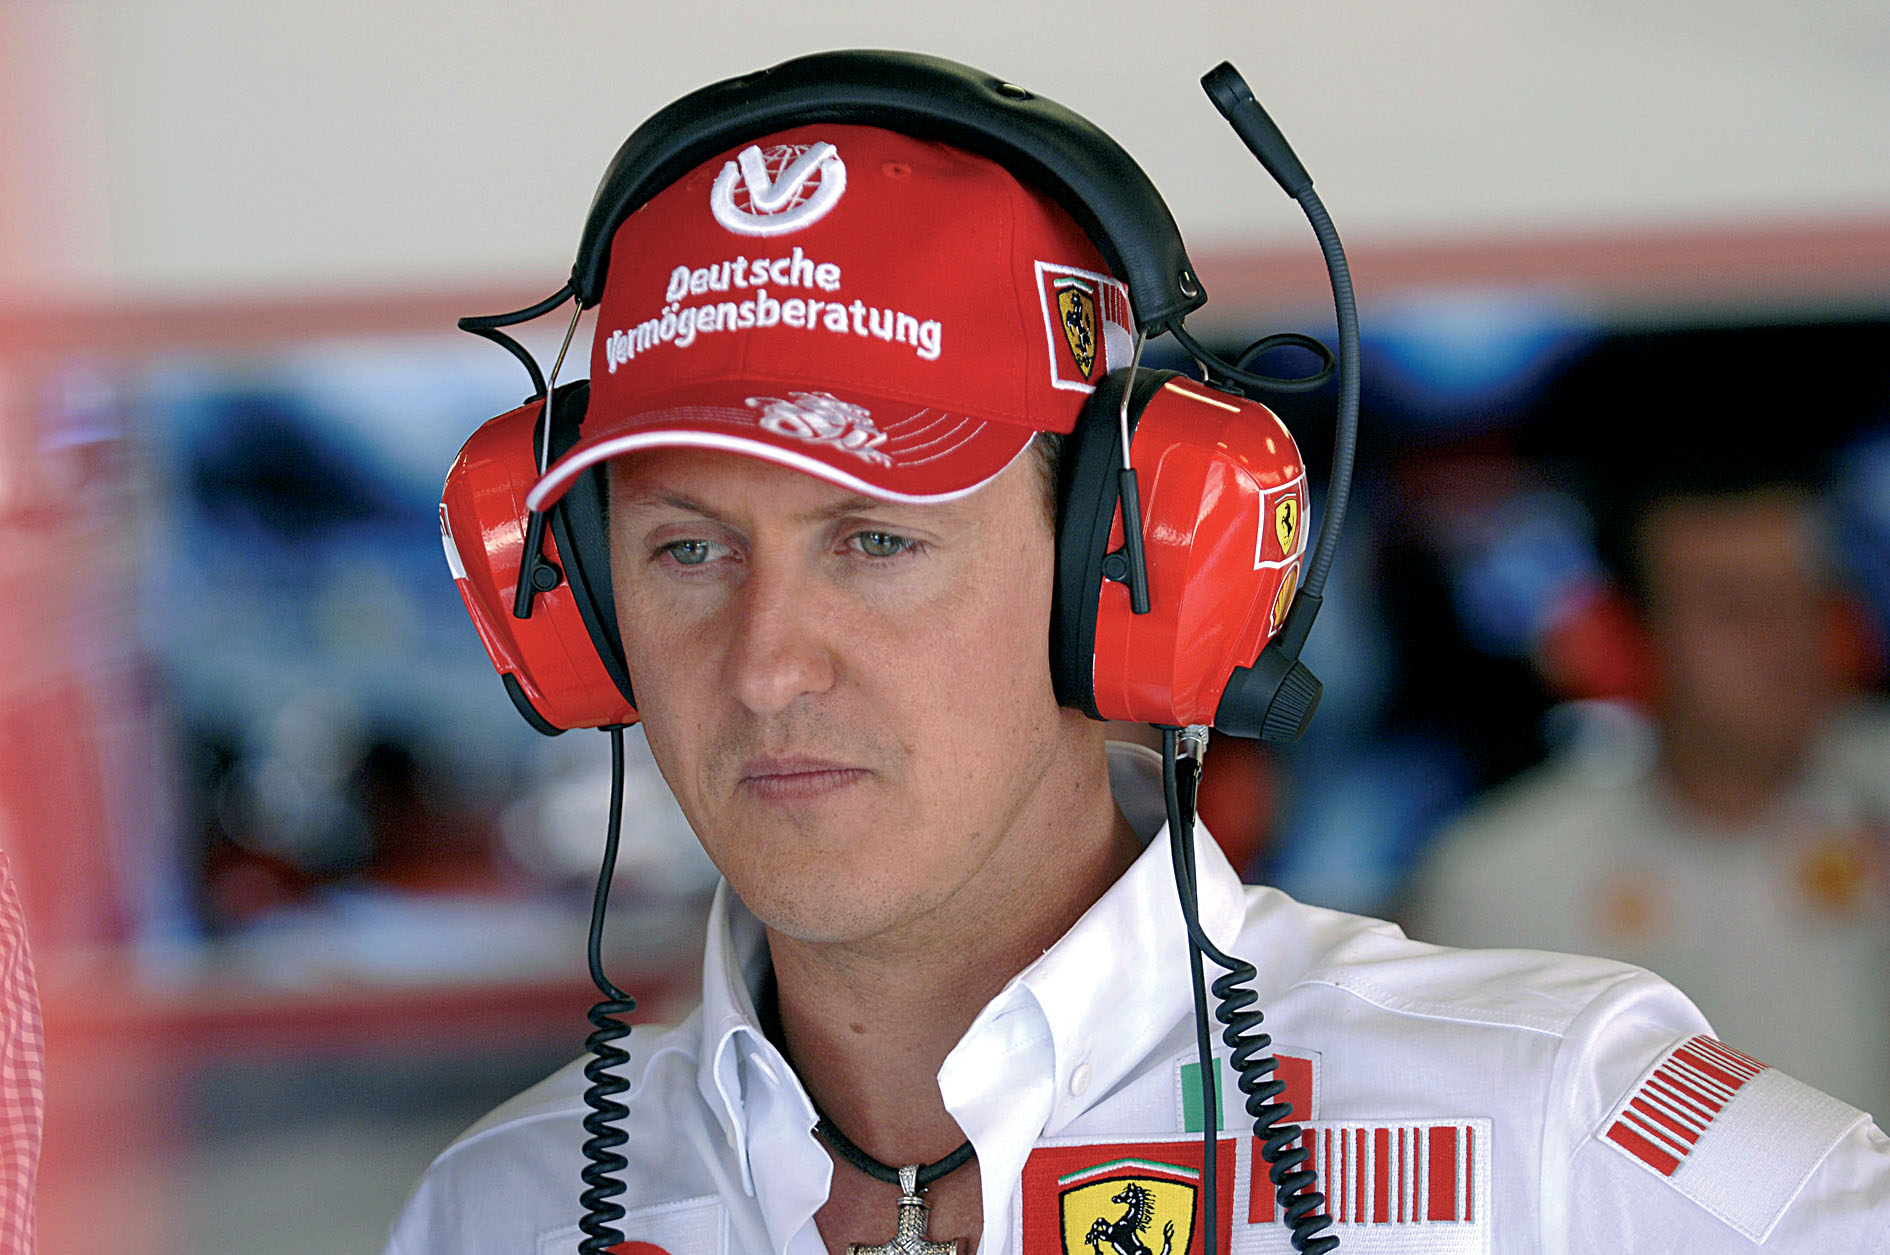 Michael Schumacher wraca do F1!